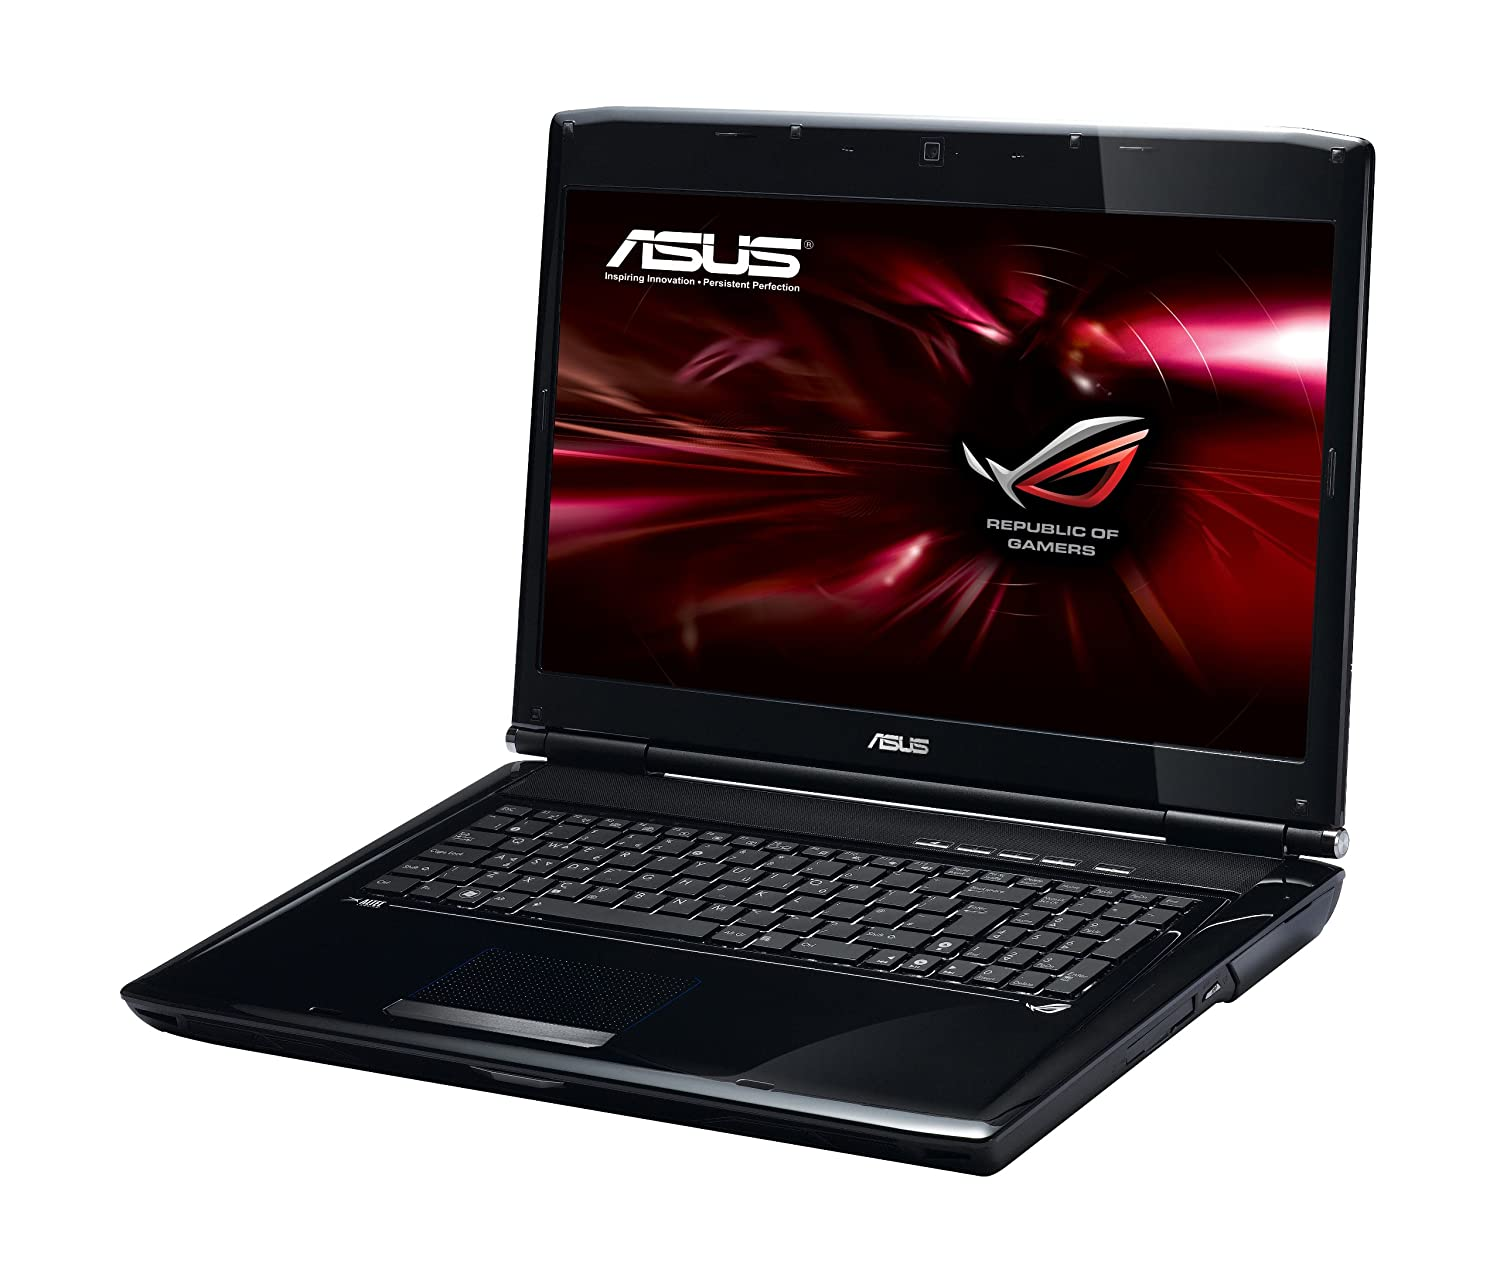 ASUS G72GX CAMERA DRIVERS FOR WINDOWS 7